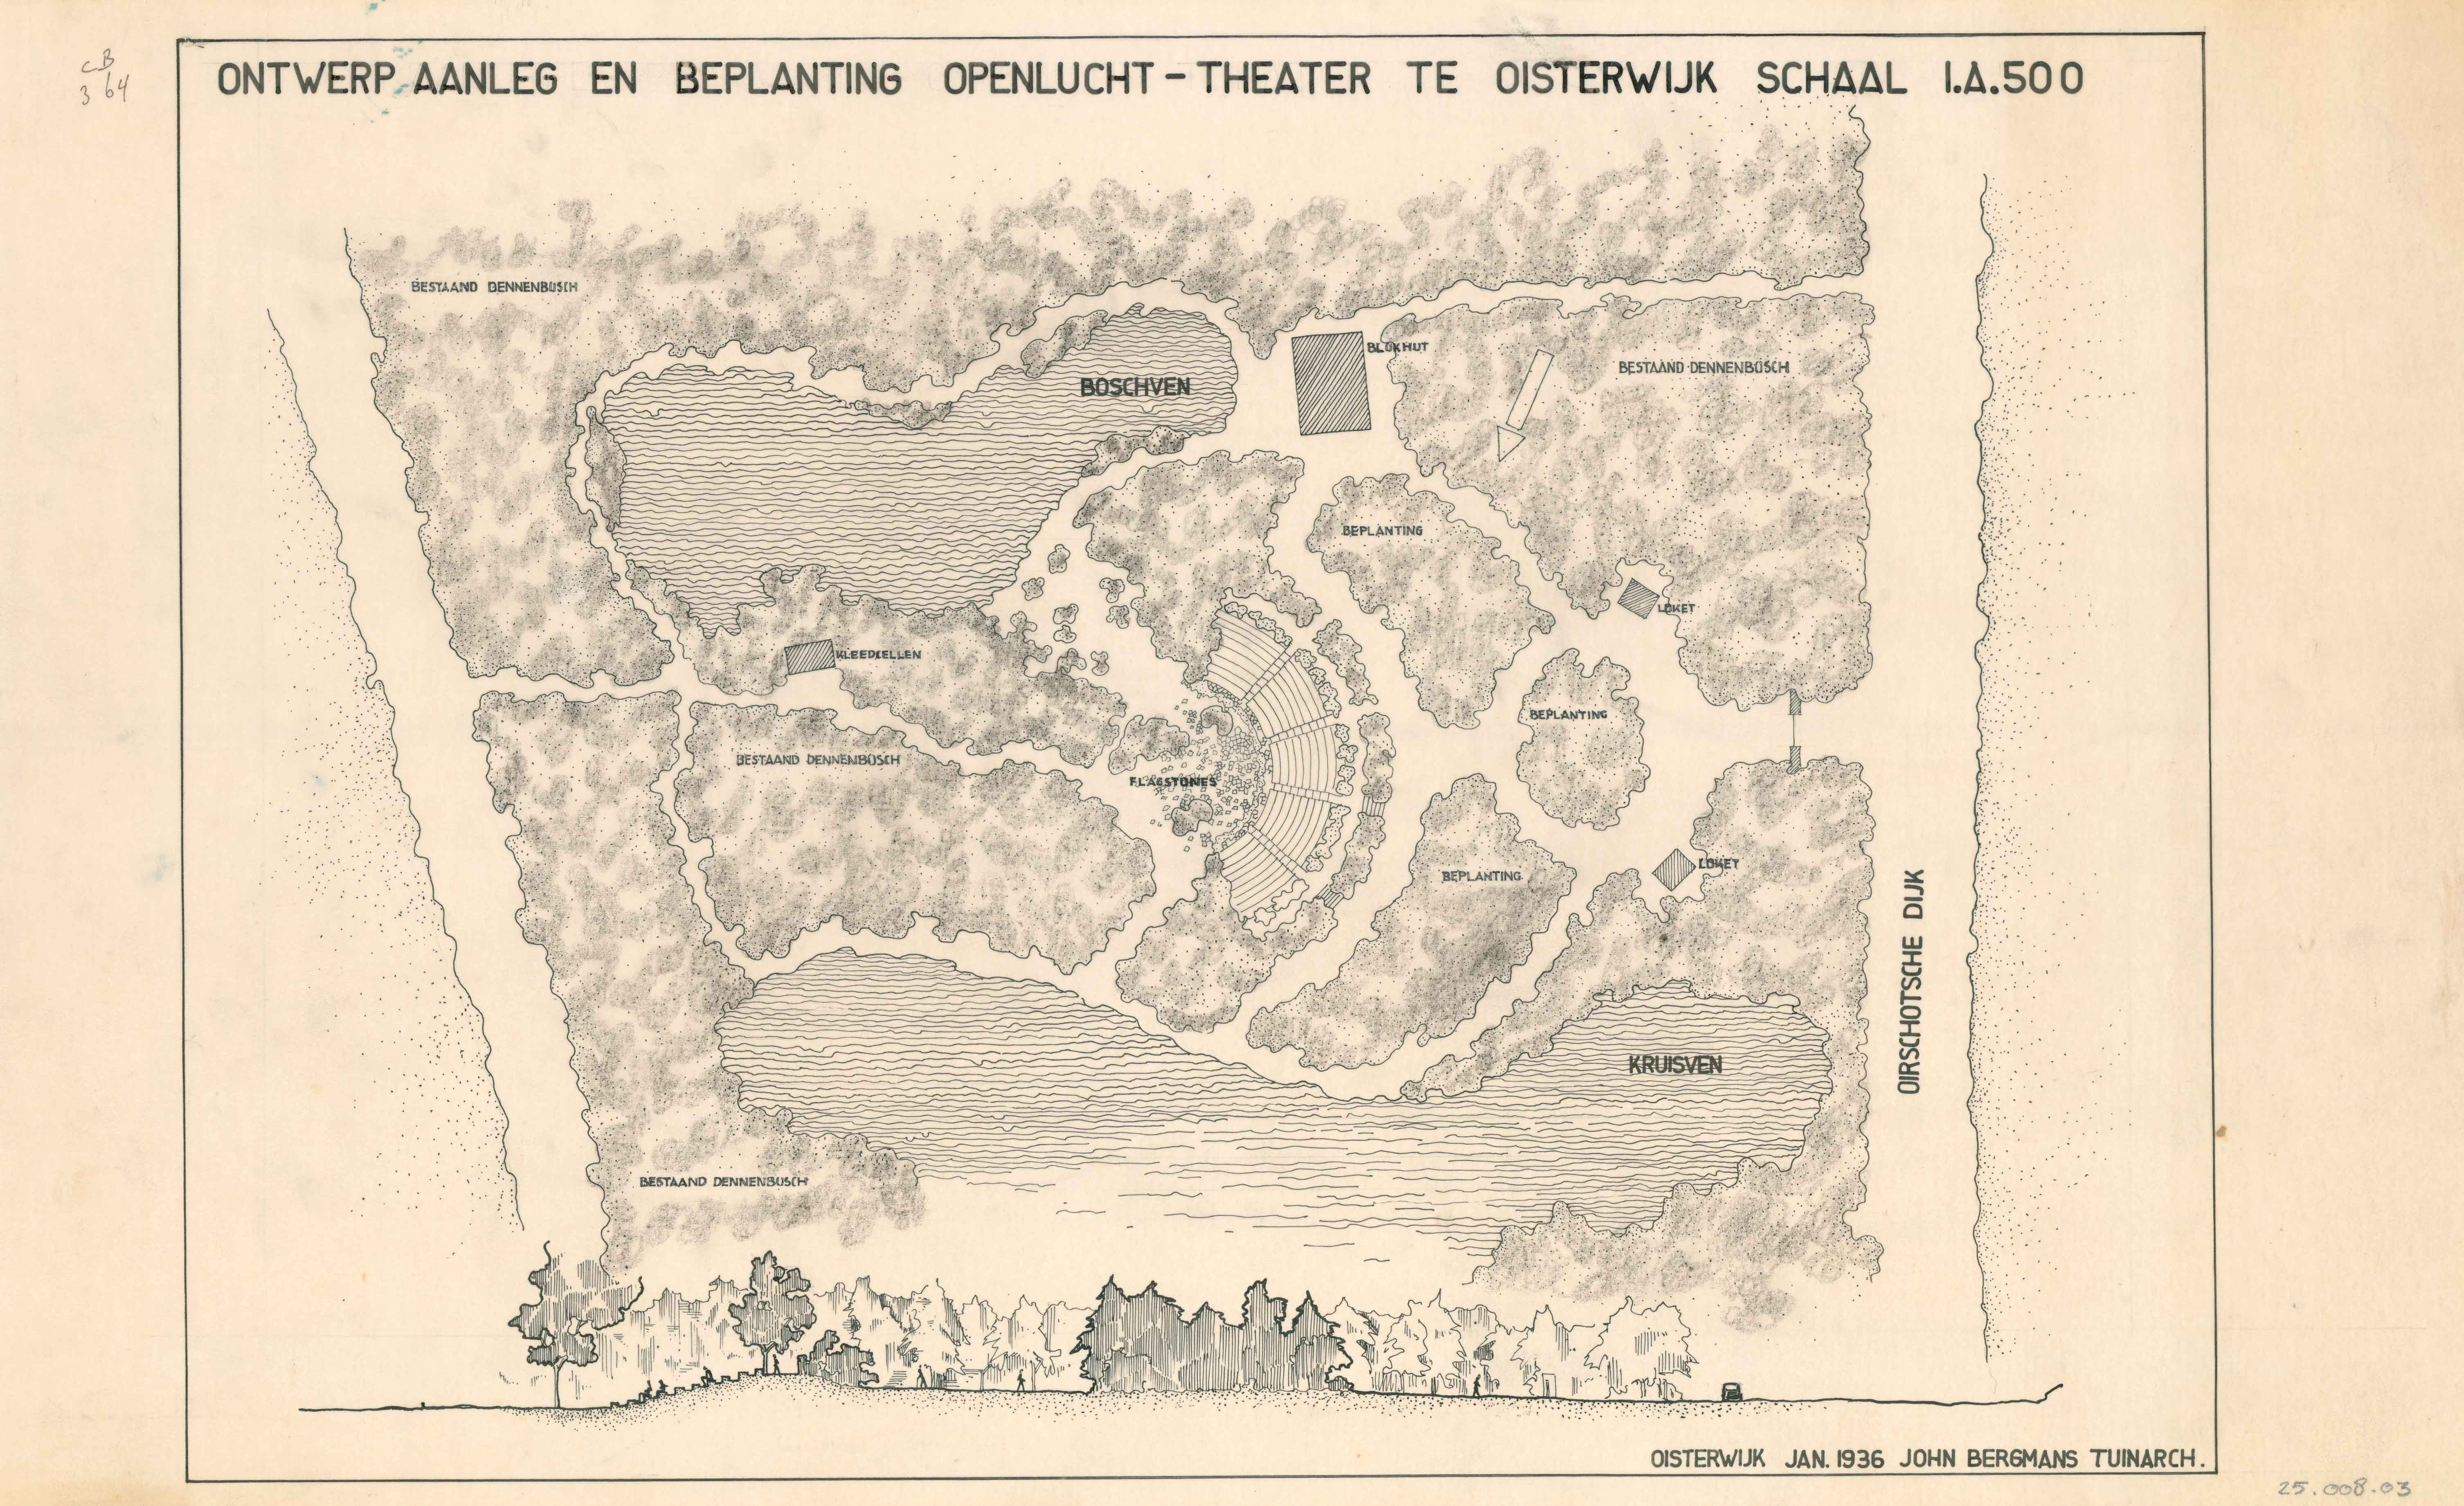 Design for the open air theatre in Oisterwijk (WUR Library, Special Collections, 25.008.03)